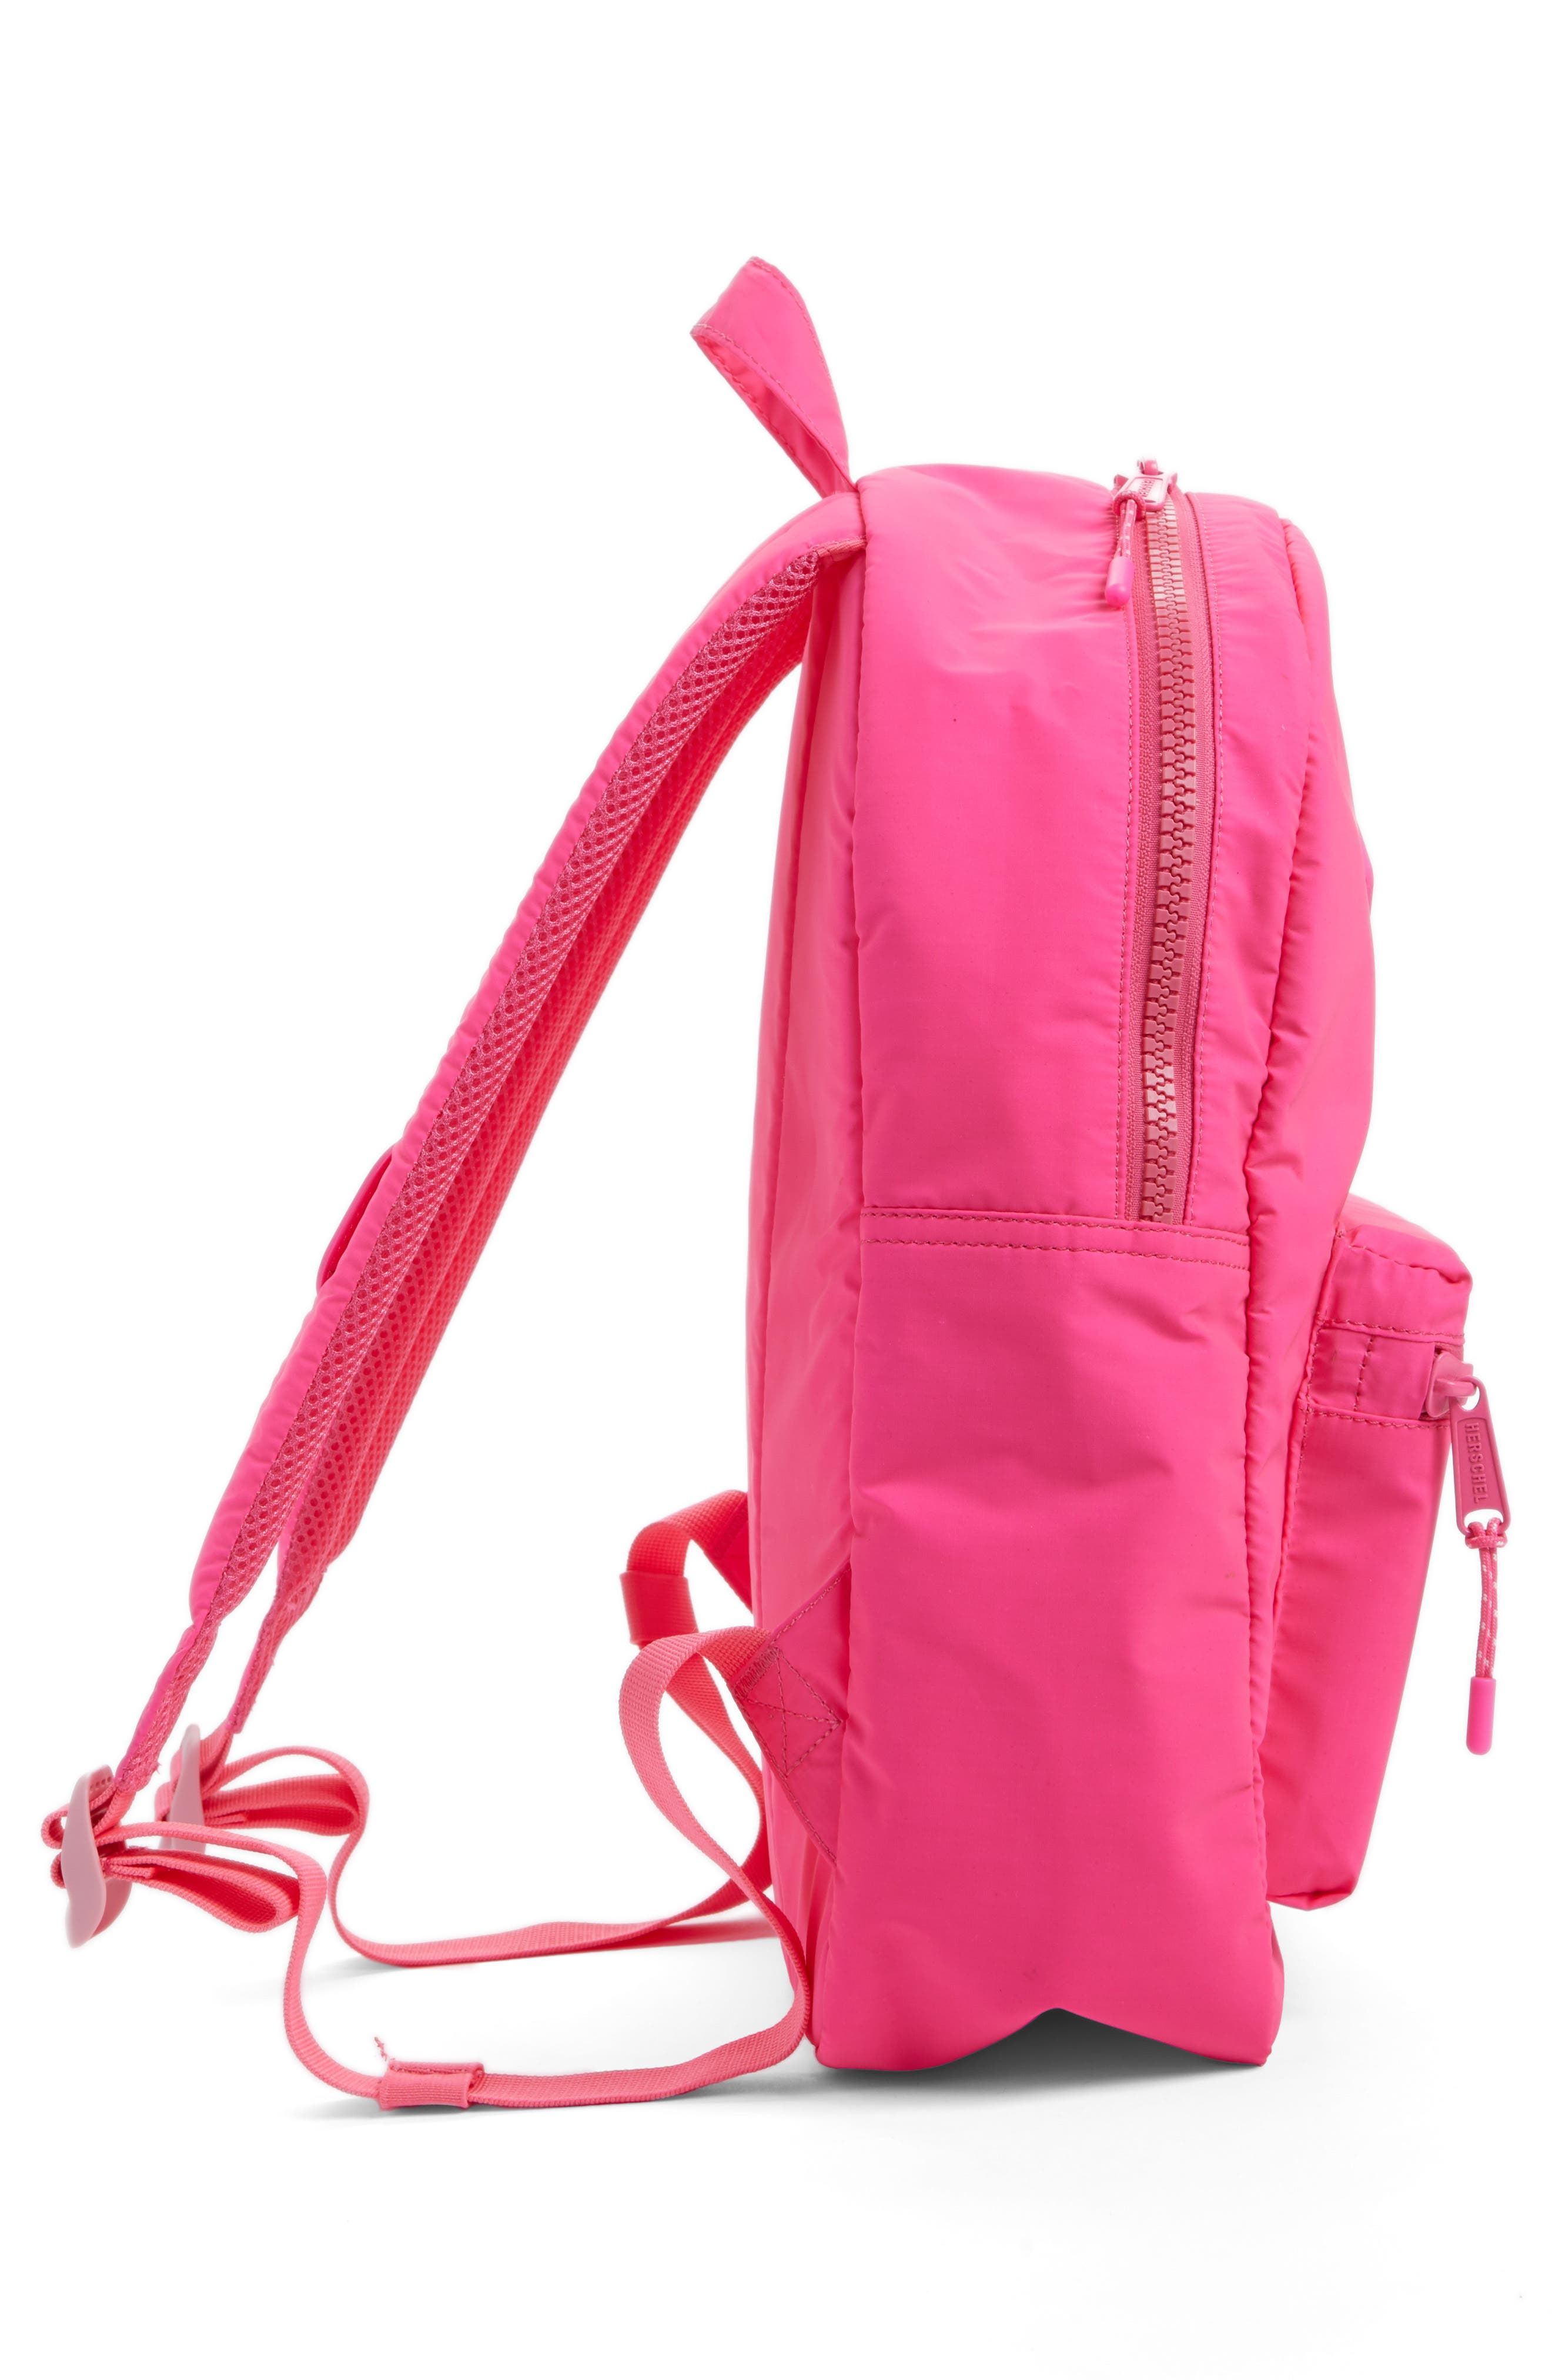 Heritage Backpack,                             Alternate thumbnail 4, color,                             650